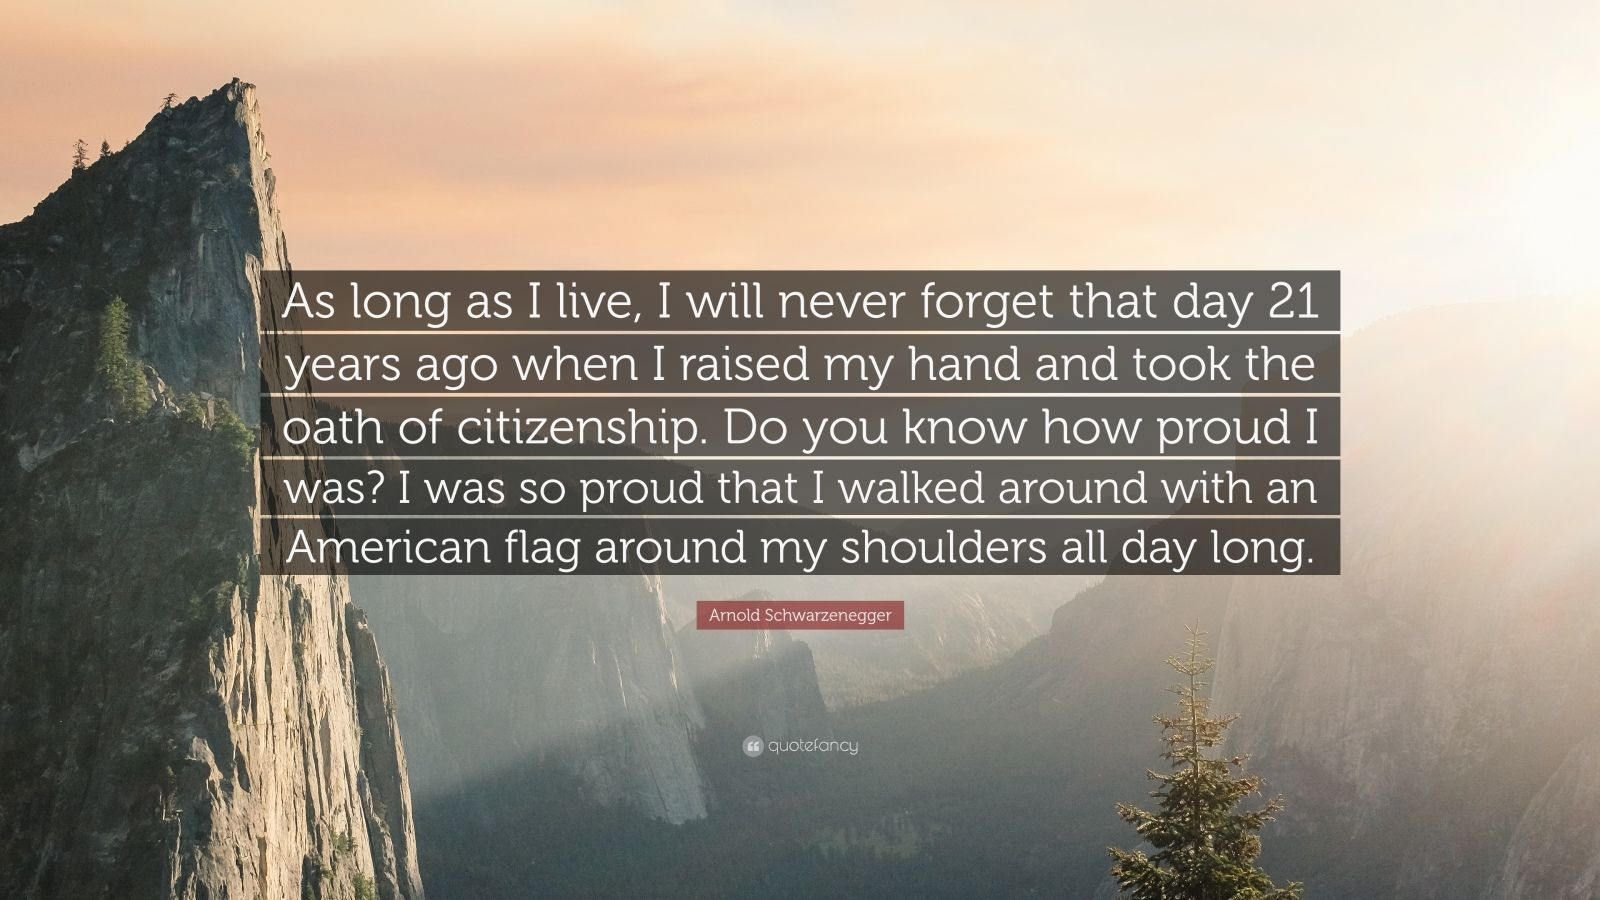 """Arnold Schwarzenegger Quote: """"As long as I live, I will never forget that day 21 years ago when I raised my hand and took the oath of citizenship. Do you know how proud I was? I was so proud that I walked around with an American flag around my shoulders all day long."""""""